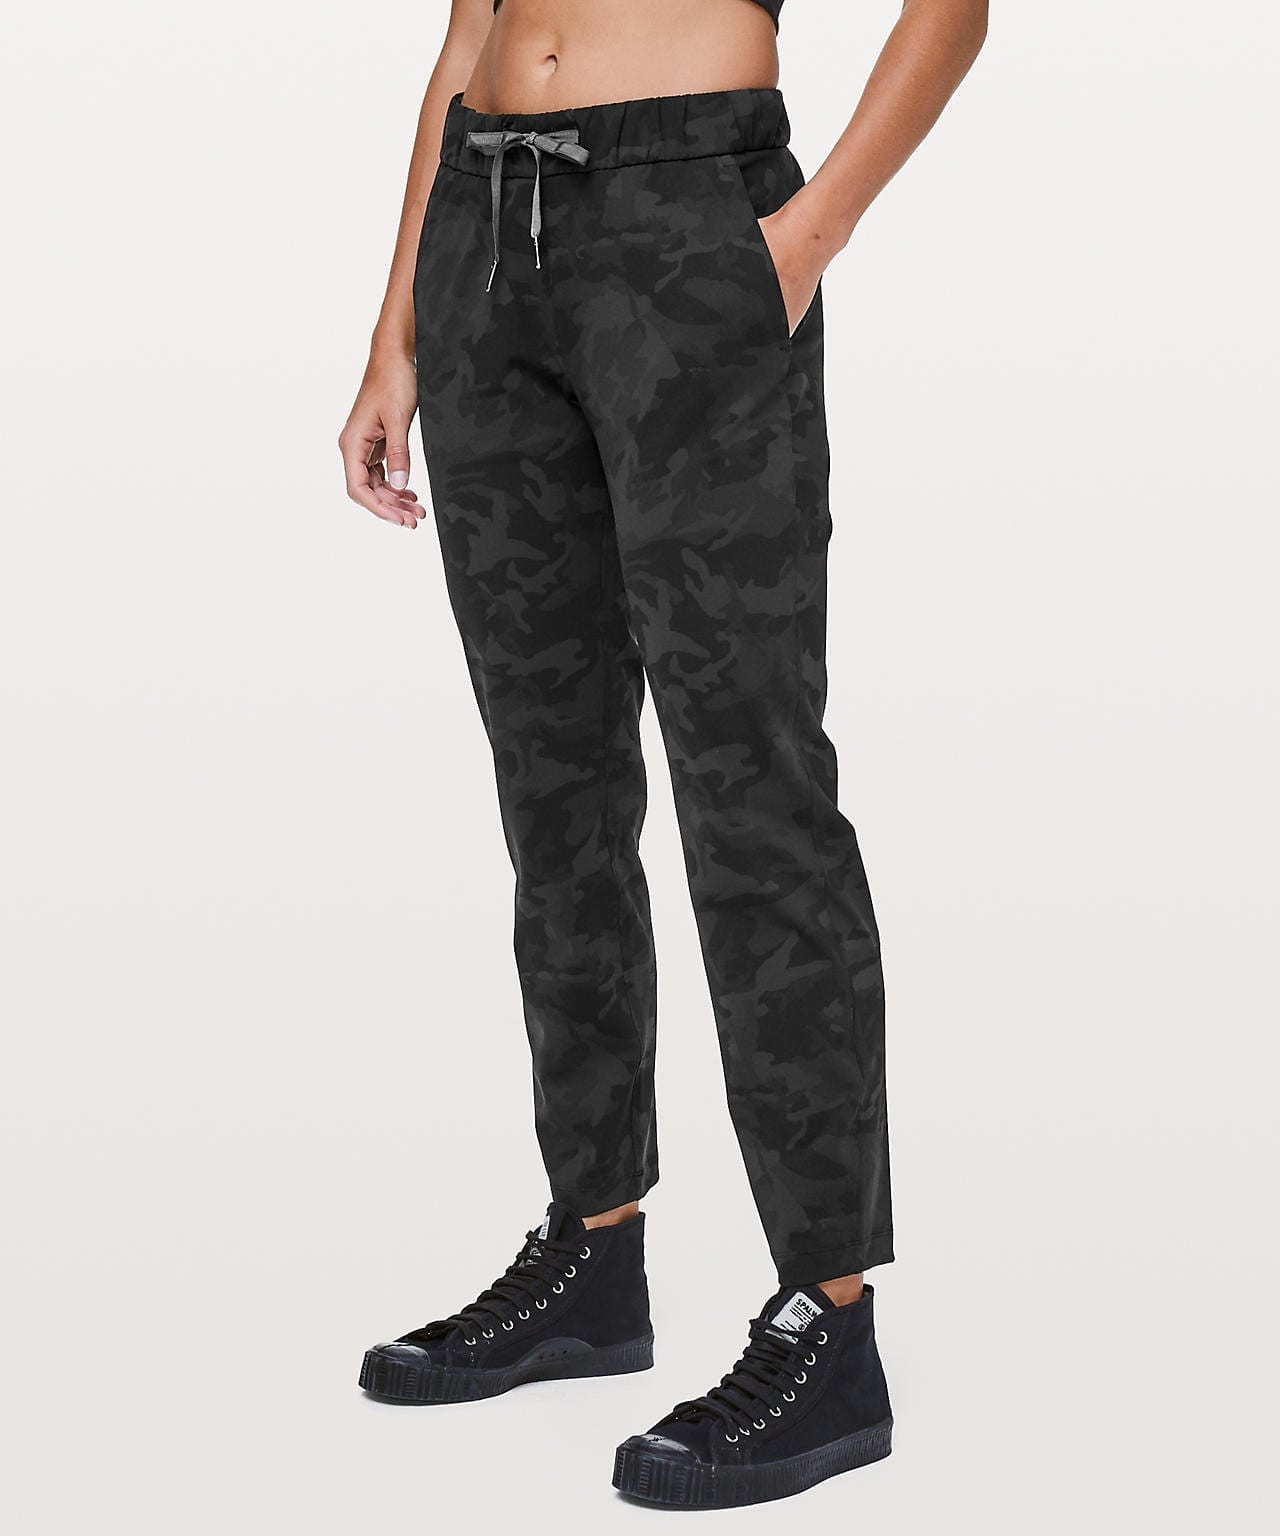 On The Fly Pant, Incognito Camo